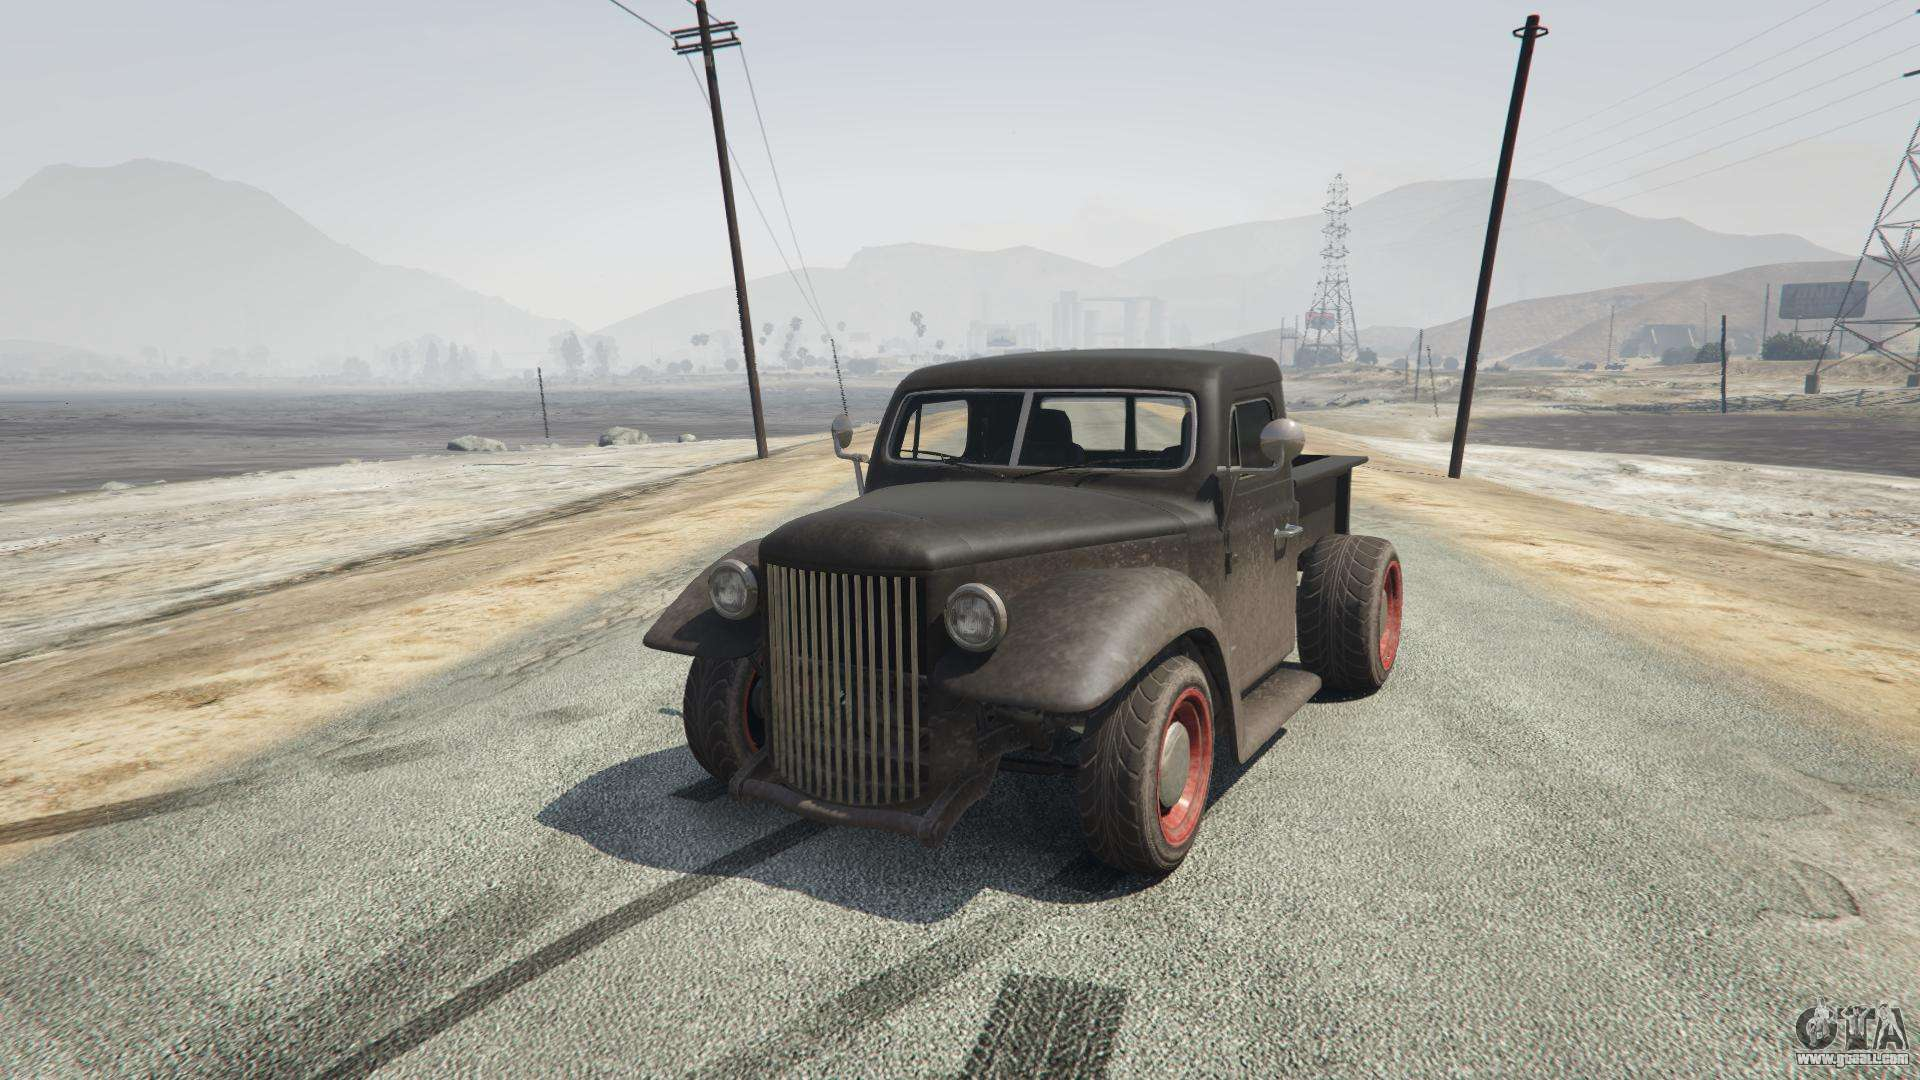 Rat-Truck from GTA 5 - front view